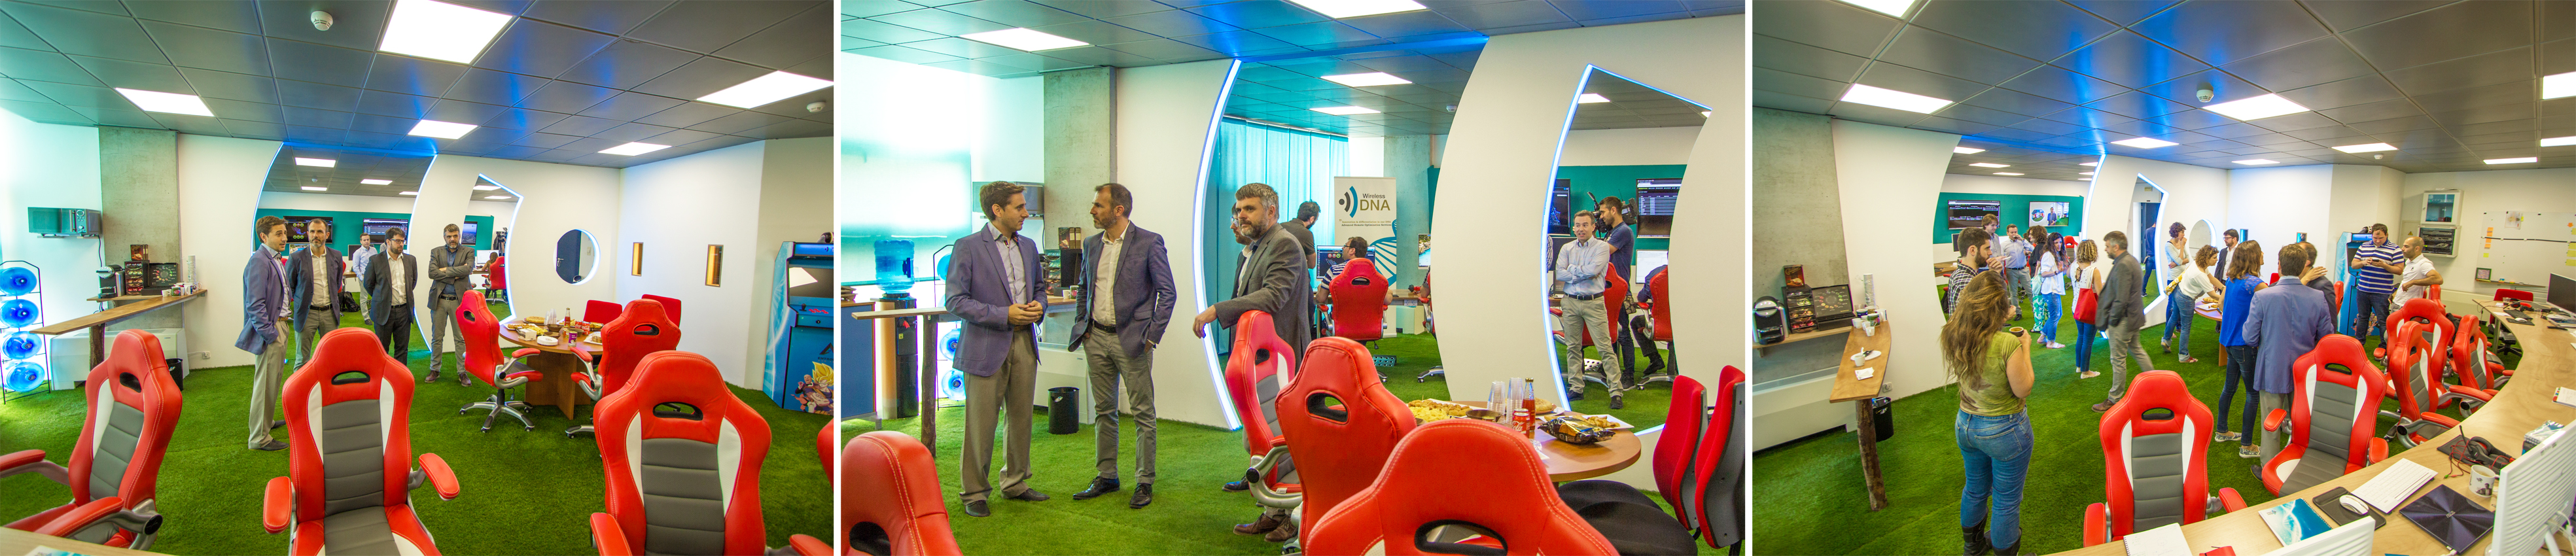 BIEL BARCELO, VICE PRESIDENT OF BALEARIC ISLANDS GOVERNMENT AND CONSOUL OF INNOVATION, RESEARCH AND TOURISM WAS VISITING Wireless DNA!